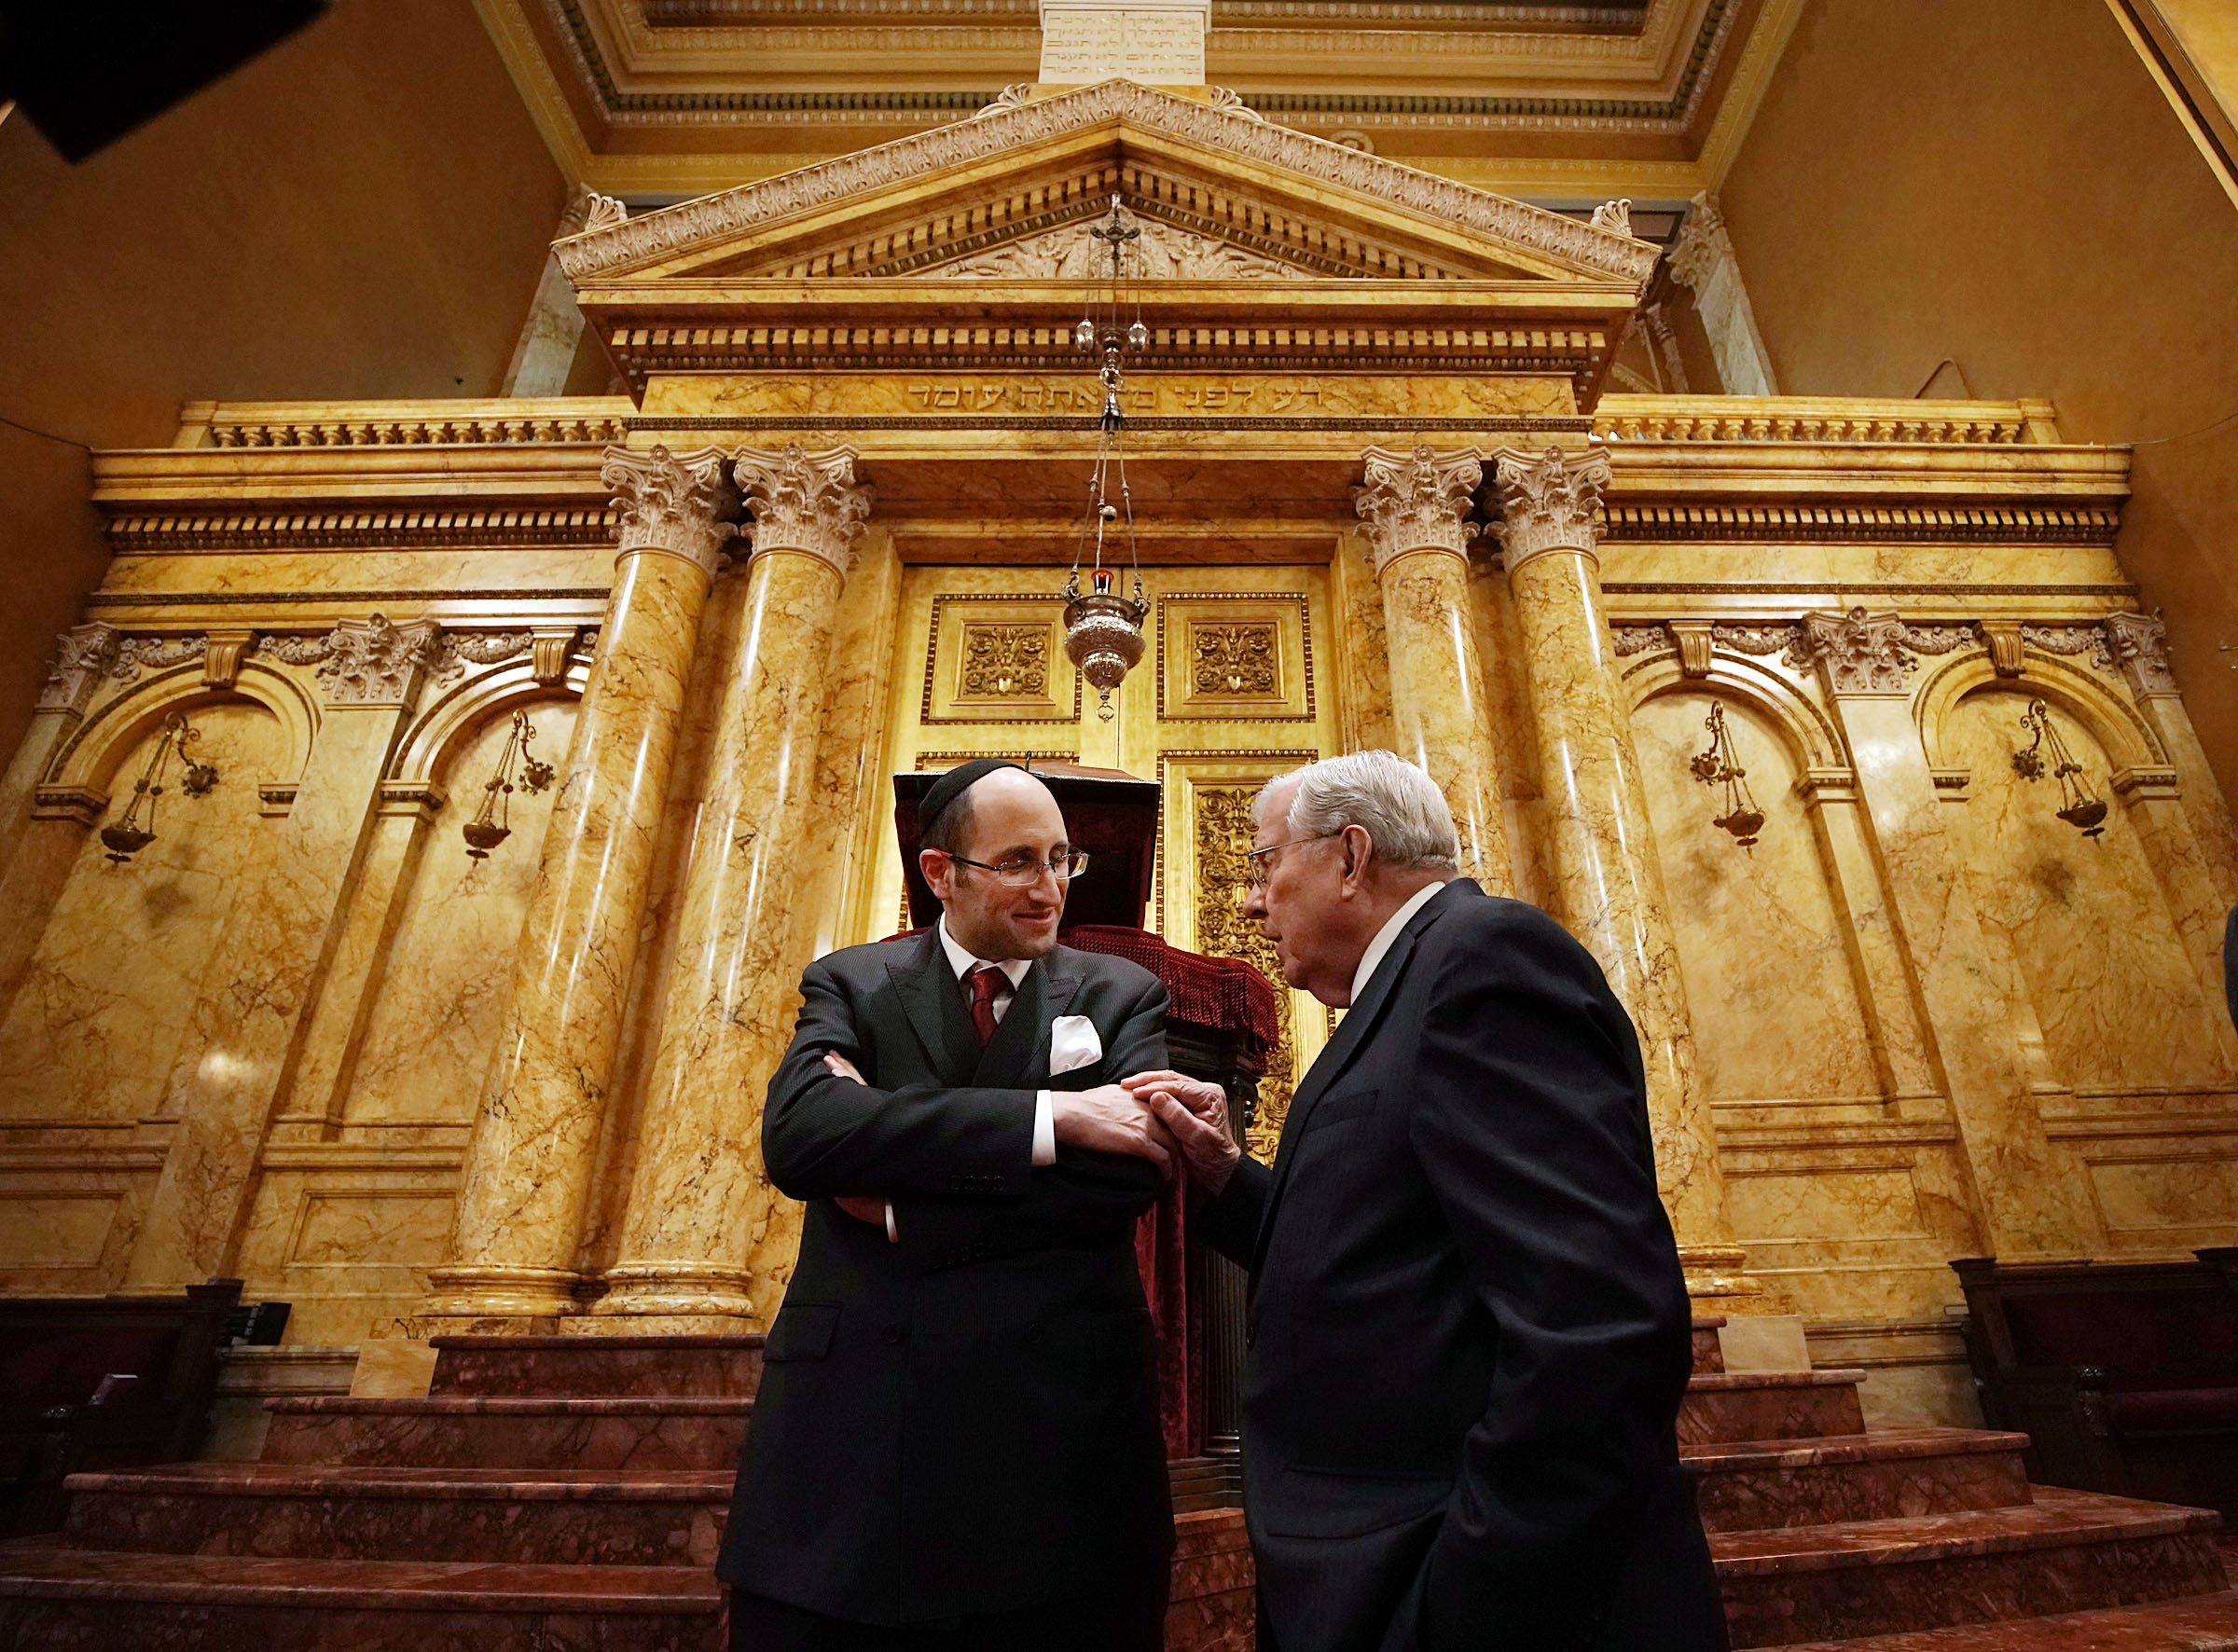 President M. Russell Ballard, right, acting president of the Quorum of the Twelve Apostles of The Church of Jesus Christ of Latter-day Saints, talks with Rabbi Meir Y. Soloveichik as they tour the Spanish and Portuguese Synagogue of the Congregation Shearith Israel in New York City on Friday, Nov. 15, 2019.